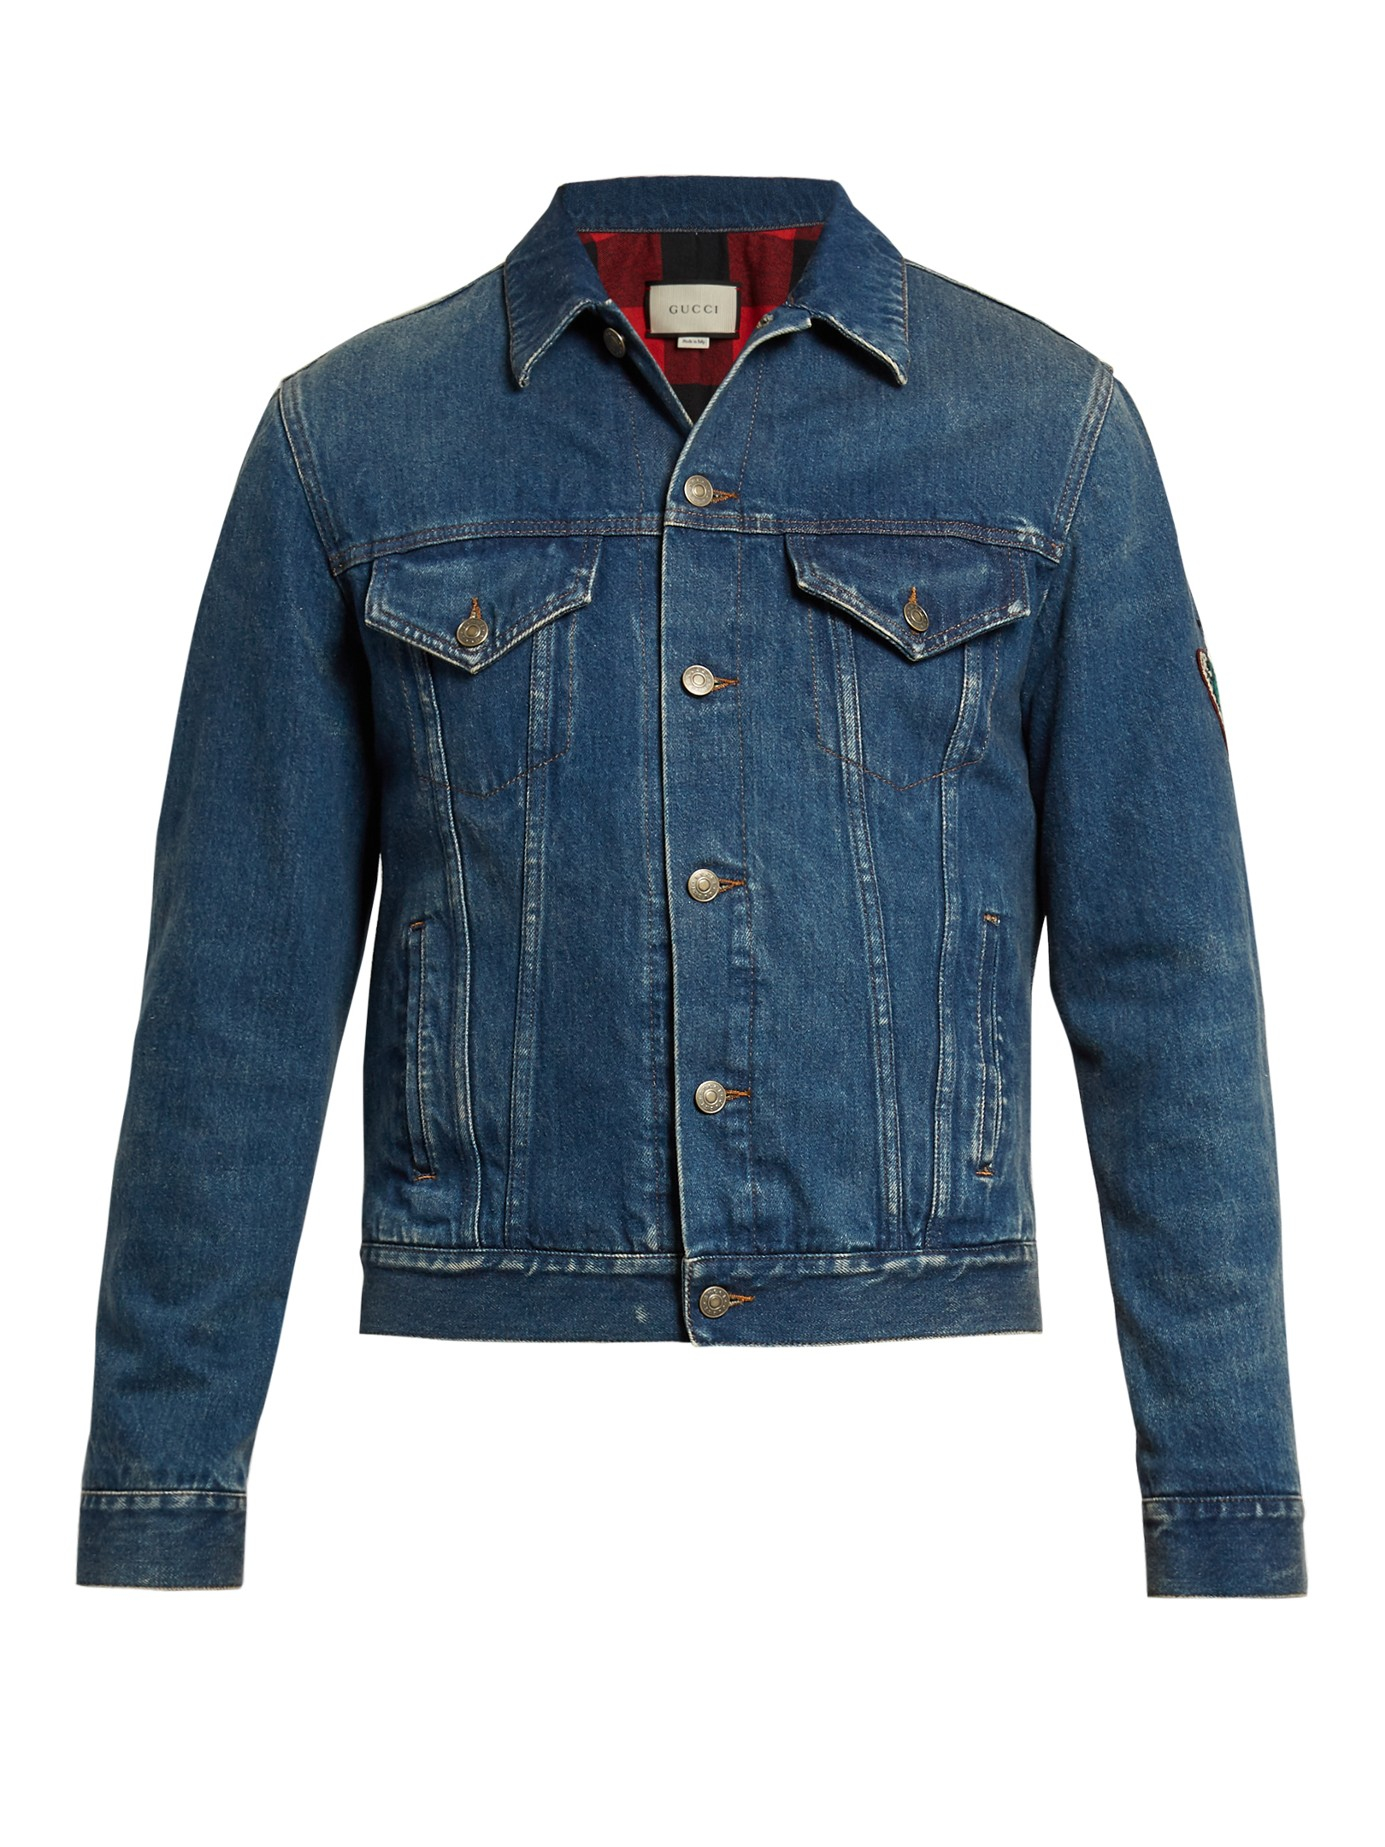 e4e6cc0d3 Gucci Tiger-embroidered Denim Jacket in Blue for Men - Lyst